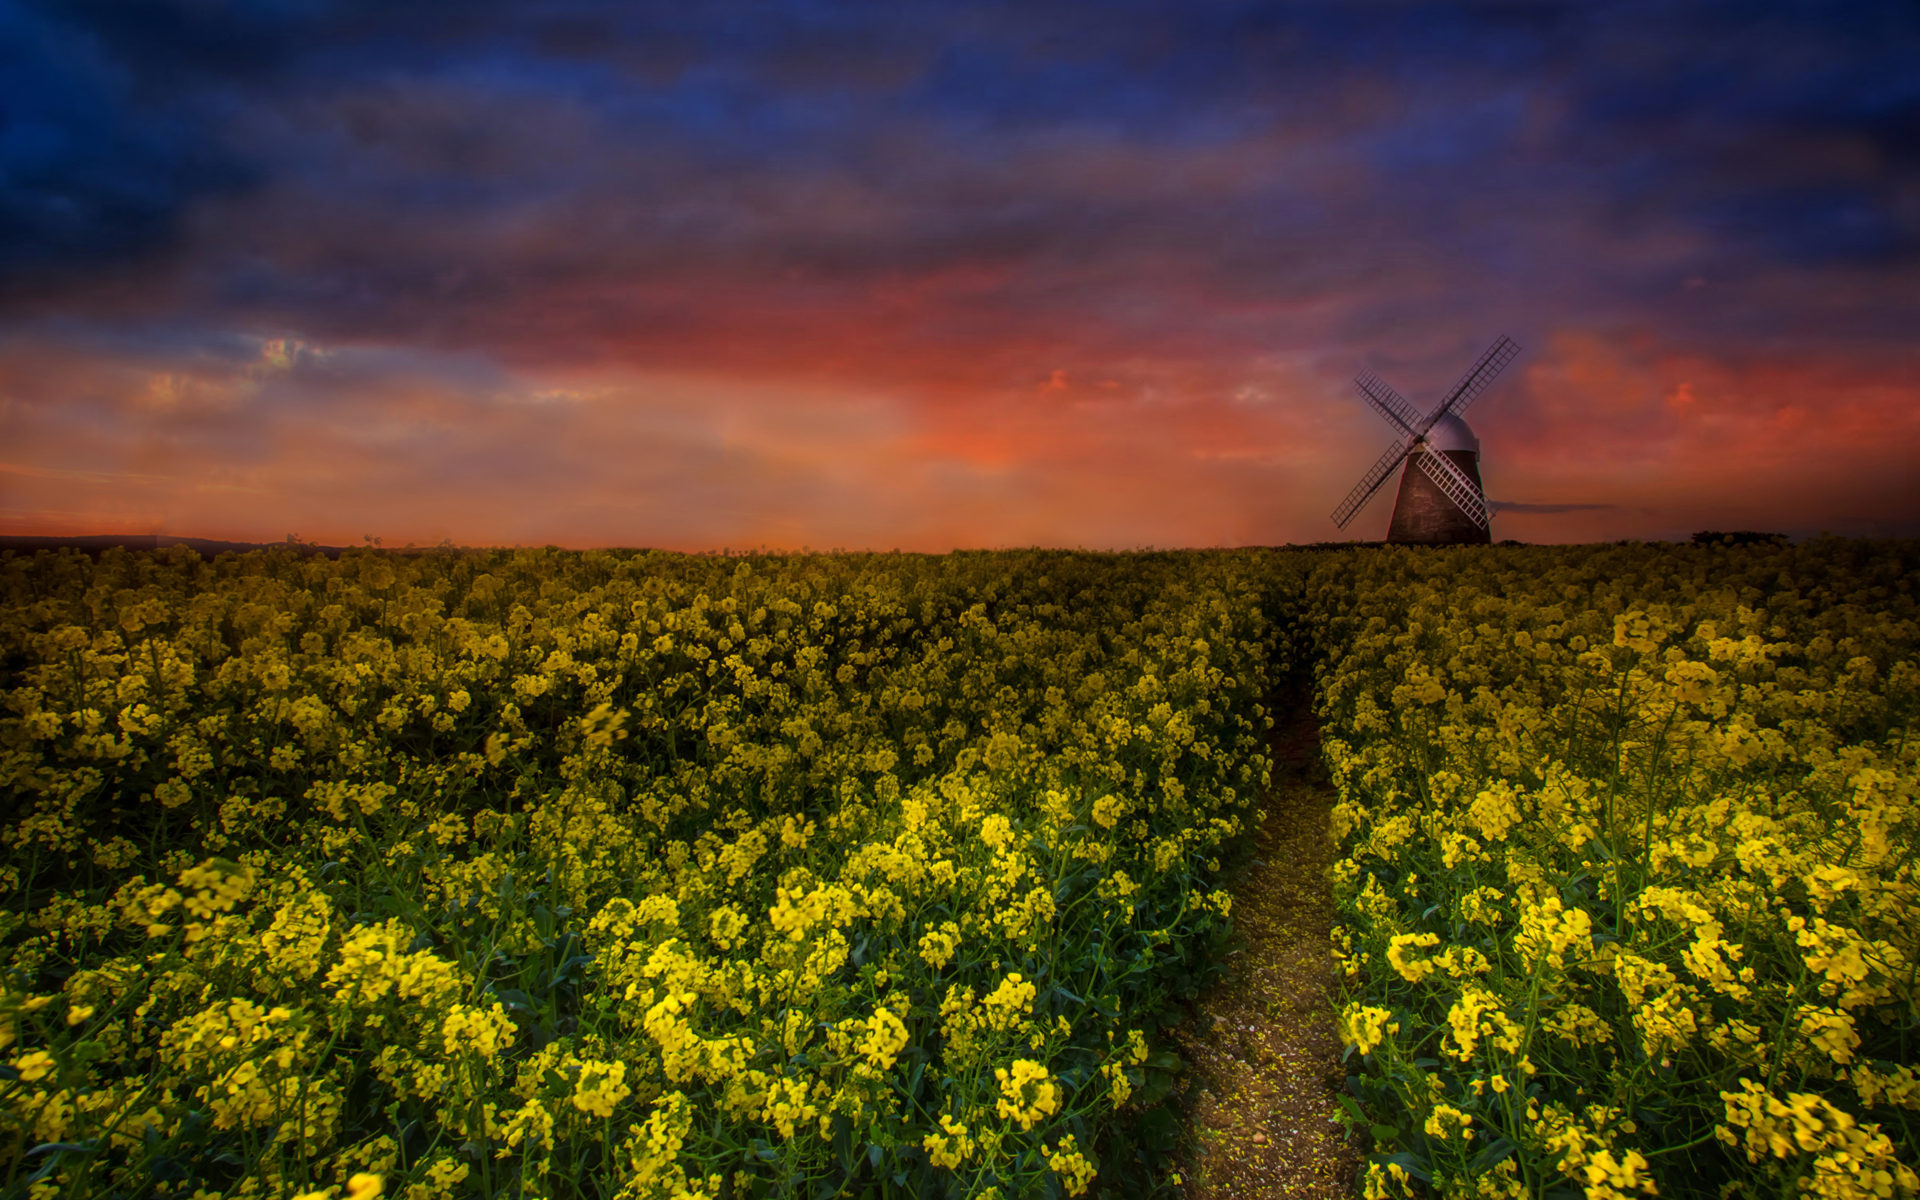 Fall Computer Screen Wallpaper Sunset Landscapes Windmill Canola Oilseed Rape Desktop